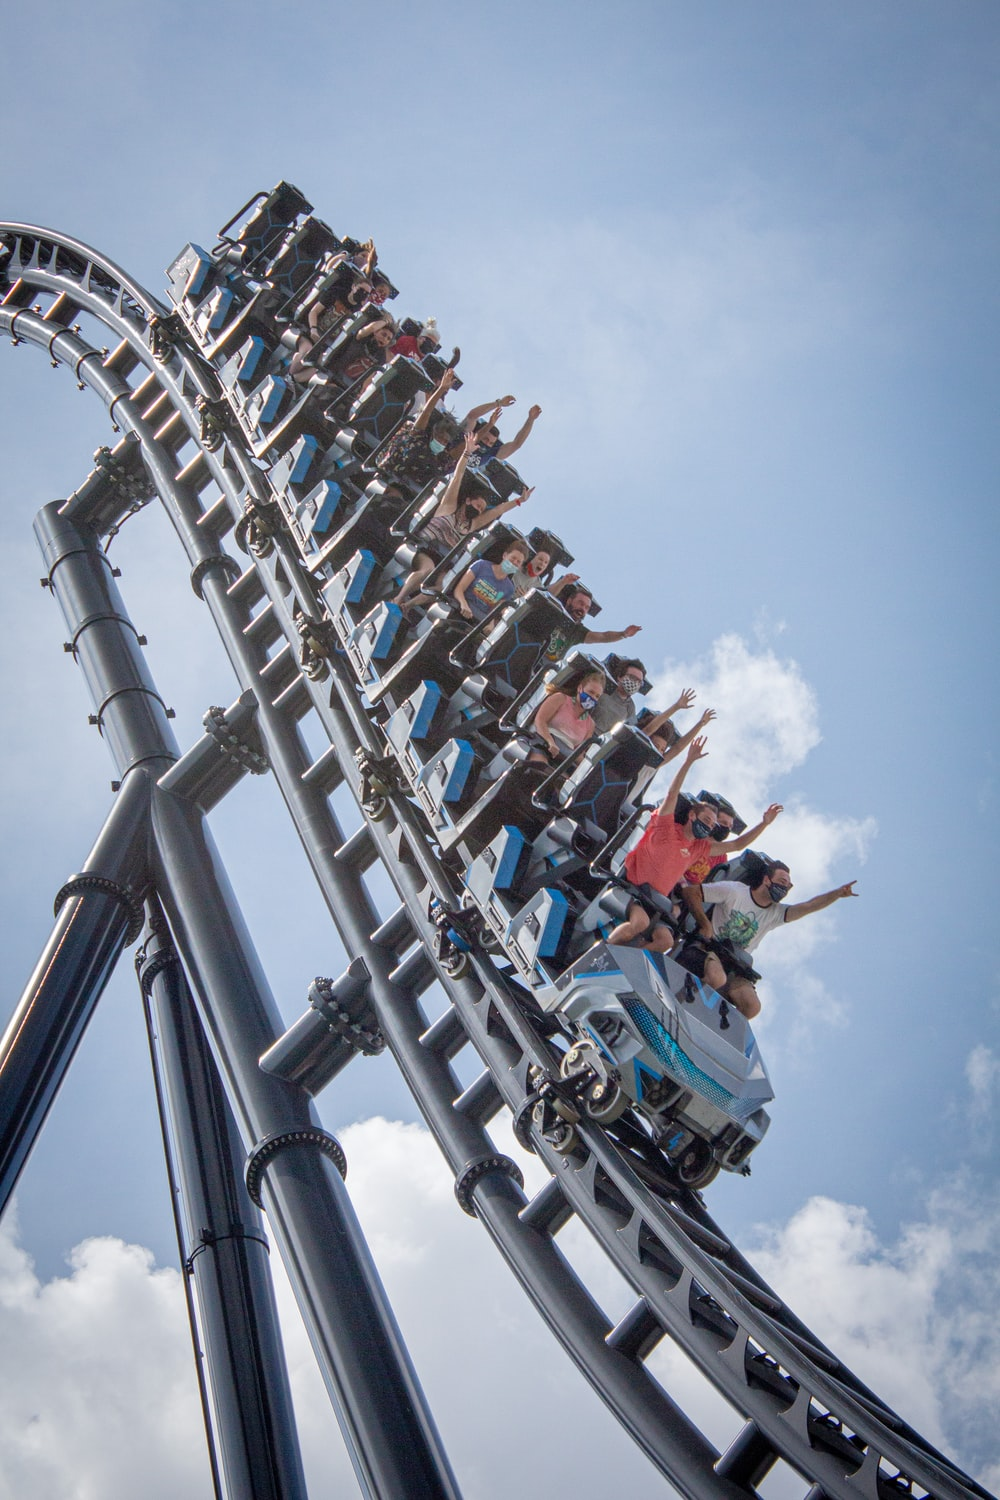 people riding on roller coaster during daytime